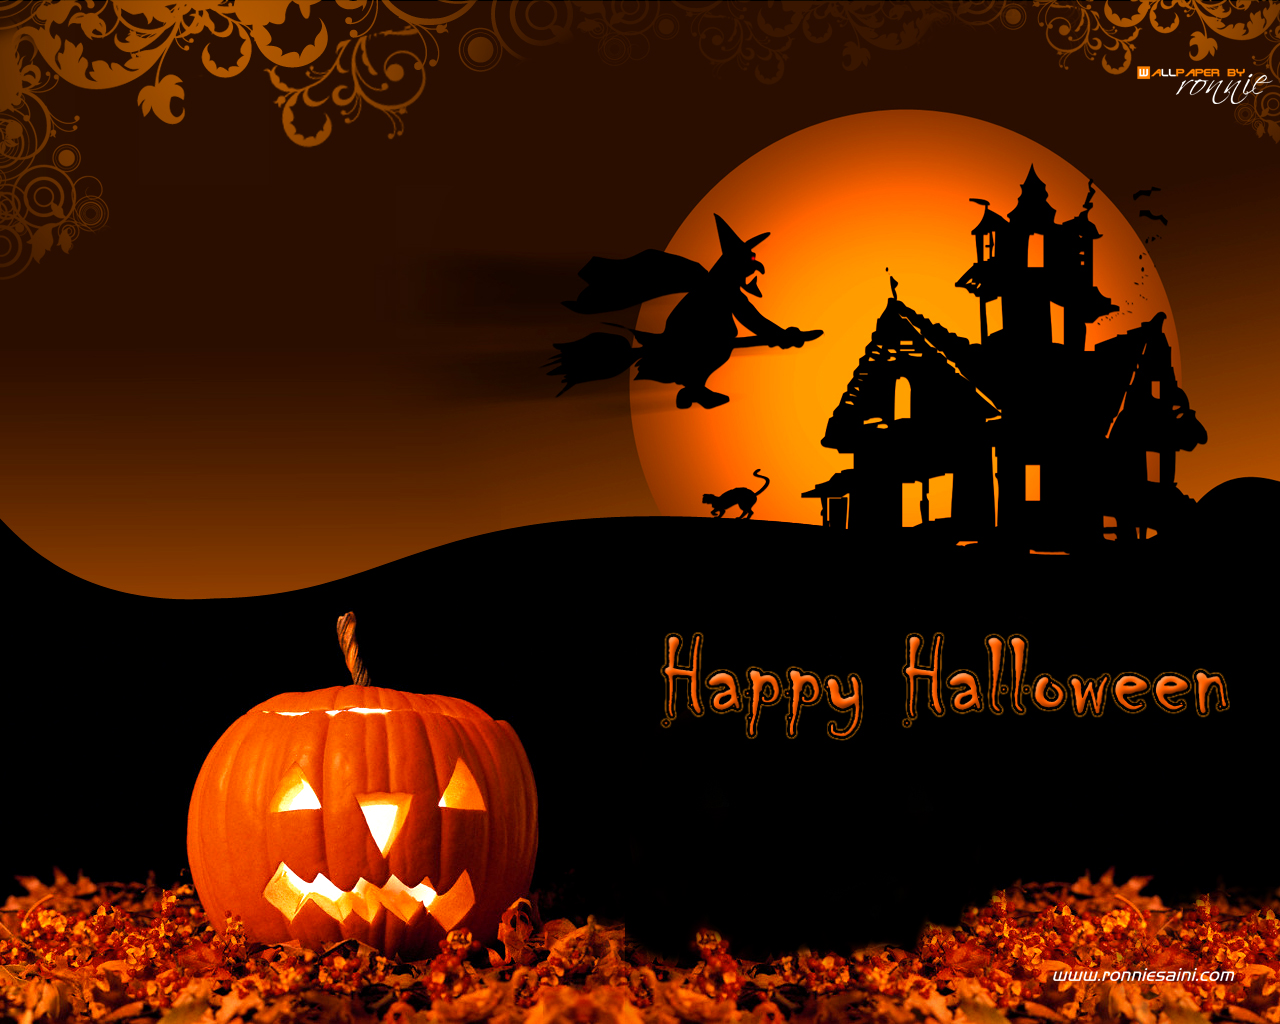 Halloween HD Wallpapers Halloween 2012 HD Desktop Pictures Wallpapers 1280x1024